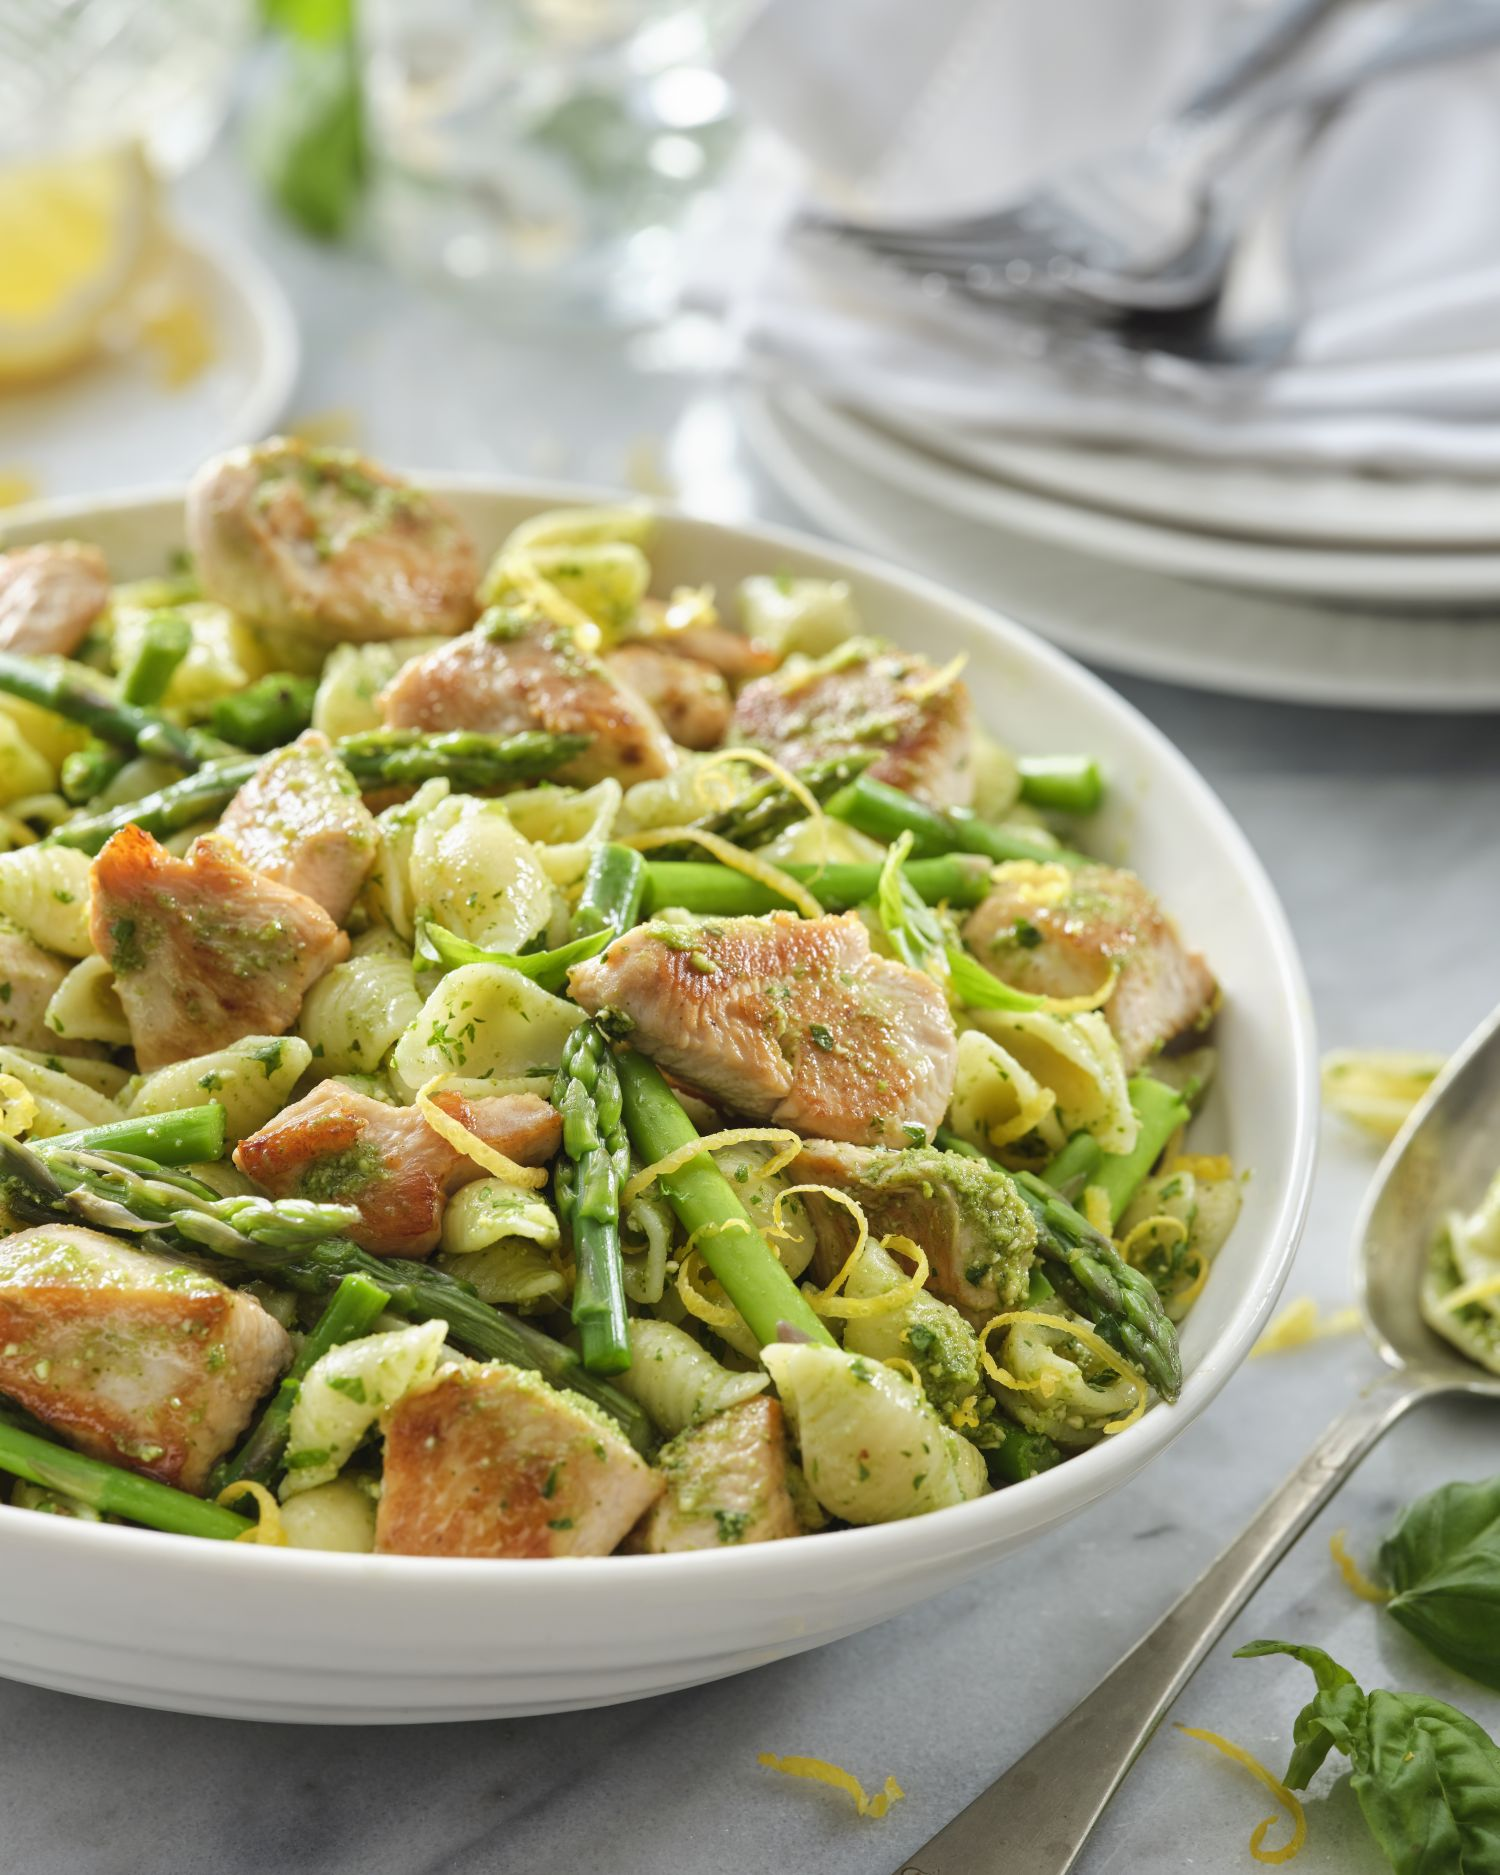 Lemon Pesto Asparagus and Turkey Shells